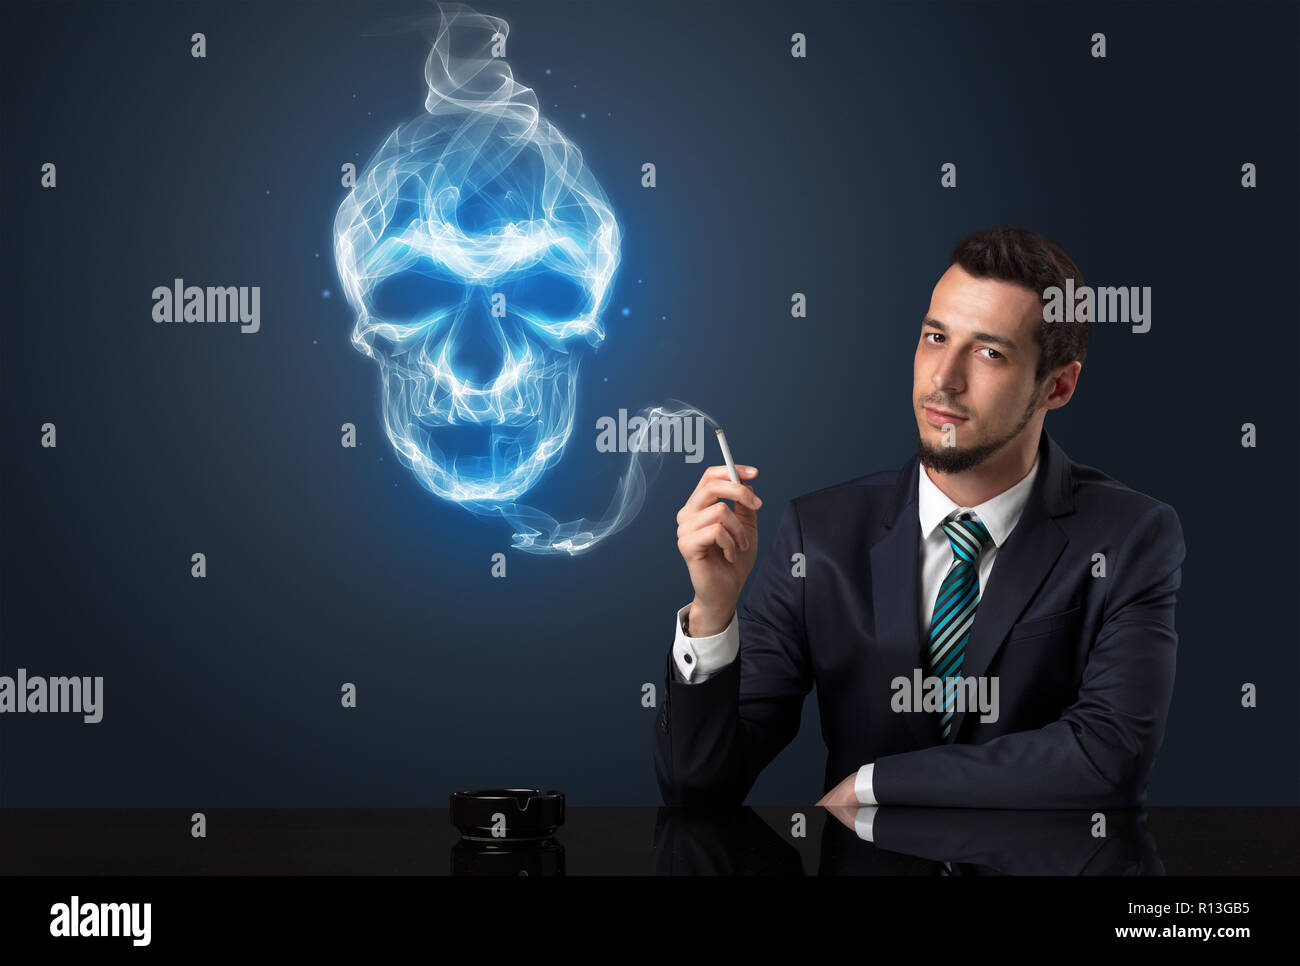 Businessman smoking with skull simbol above his head. - Stock Image